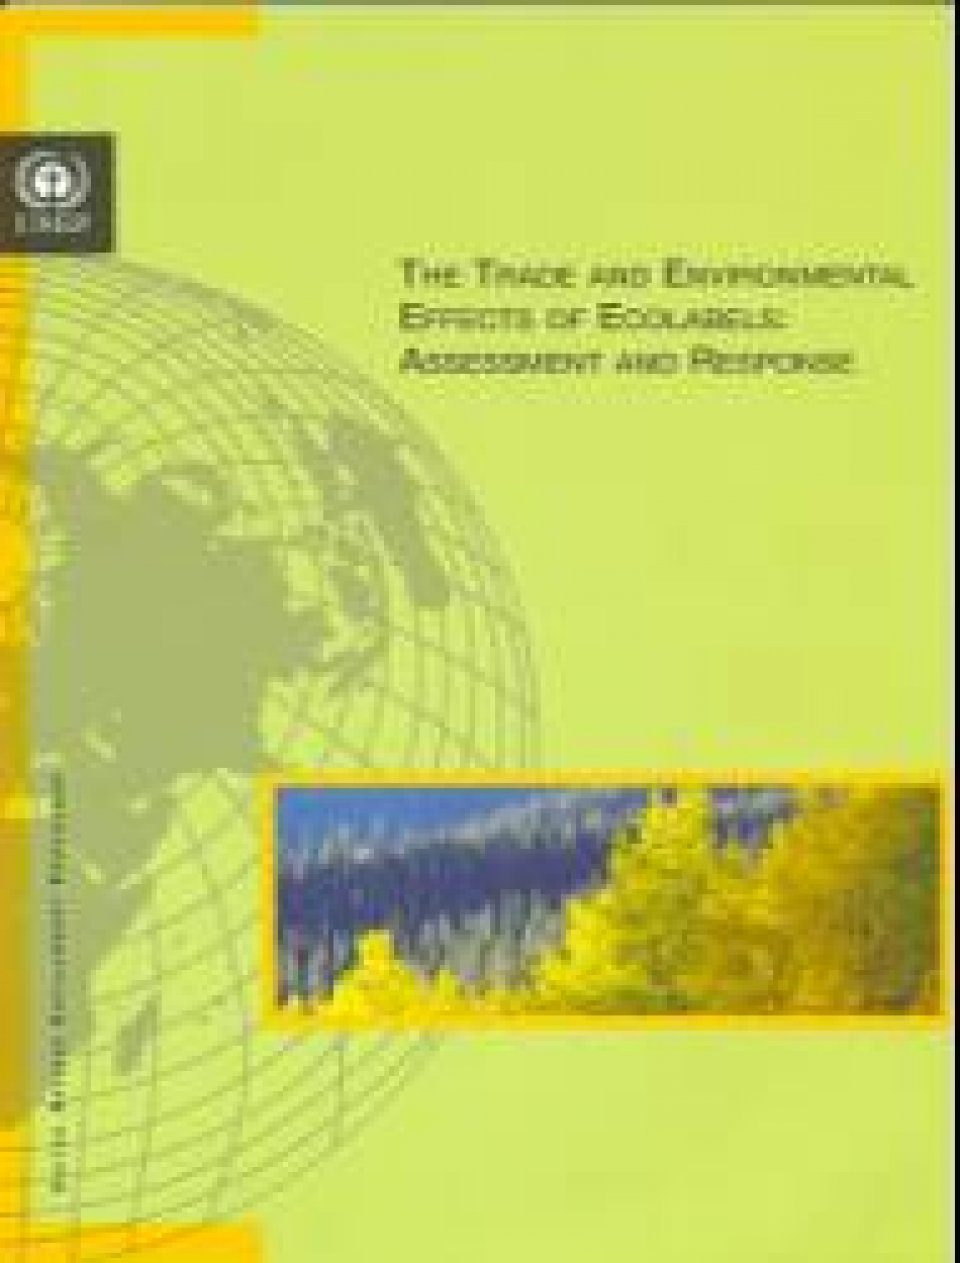 The Trade and Environmental Effects of Ecolabels